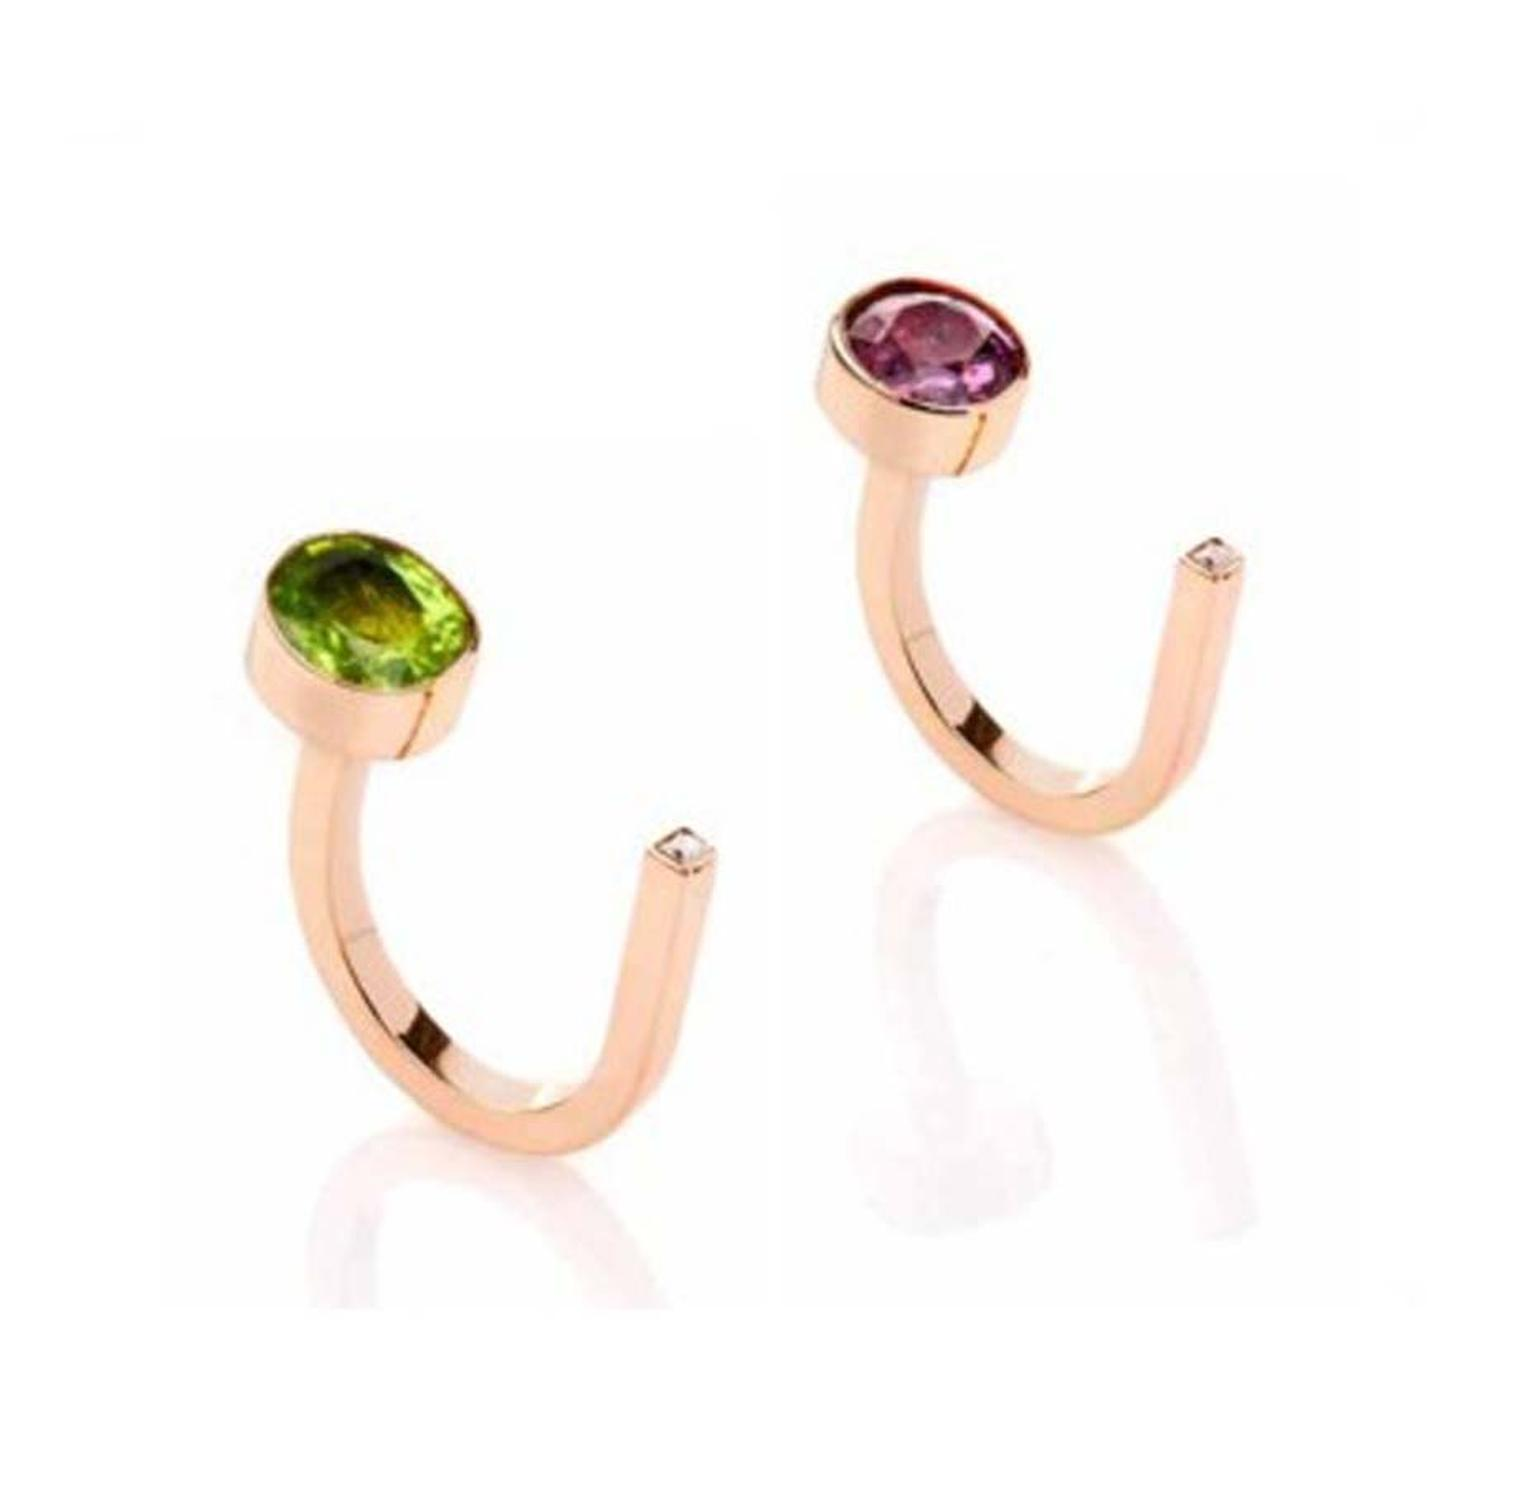 MyriamSOS Side Stone ring in rose gold with a peridot or princess-cut sapphire.